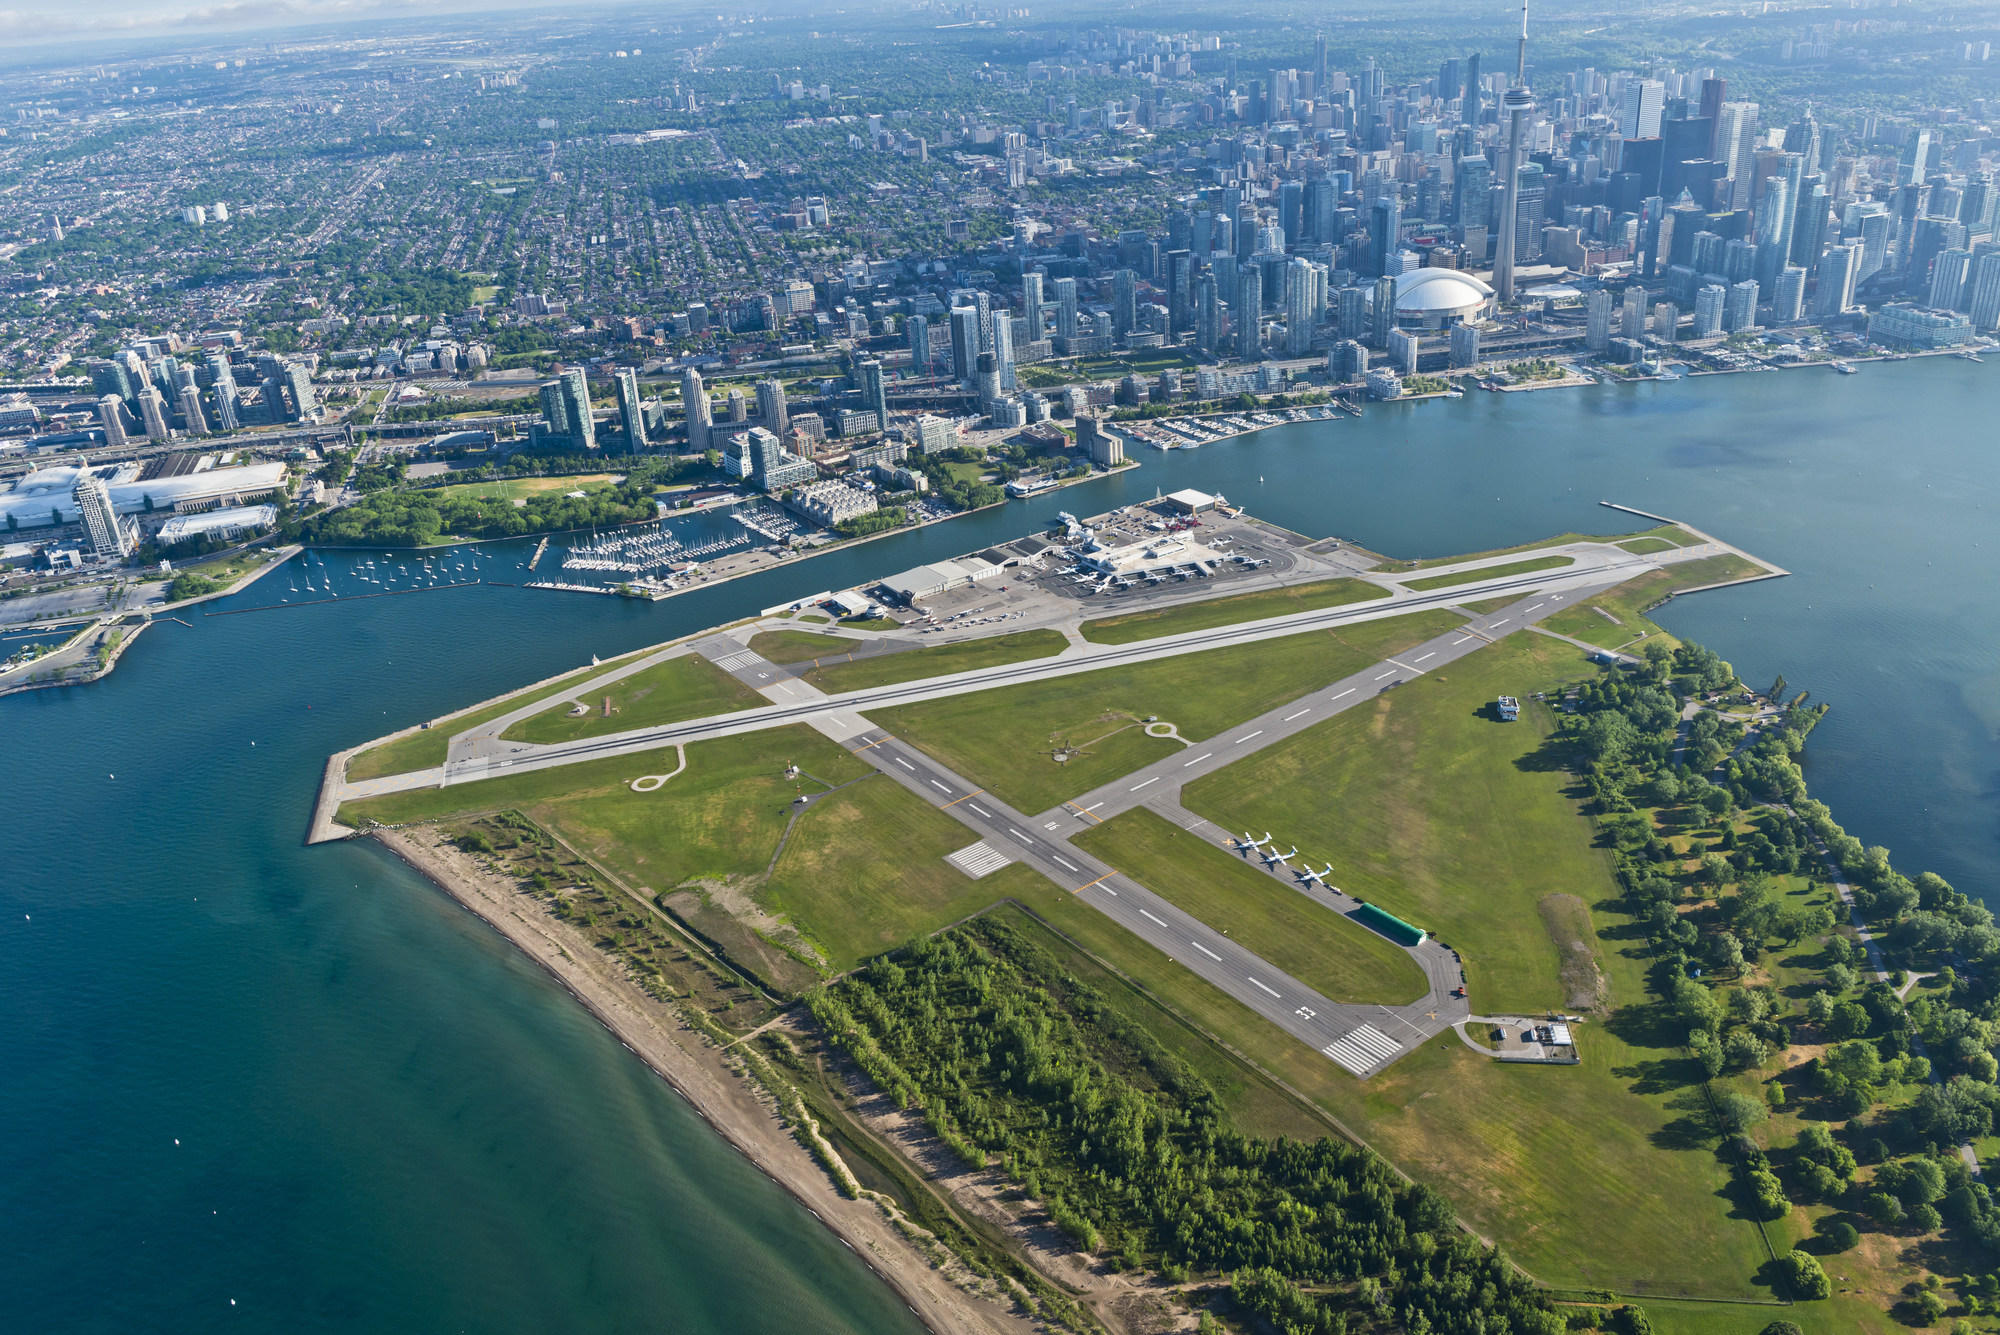 Toronto Billy Bishop Airport